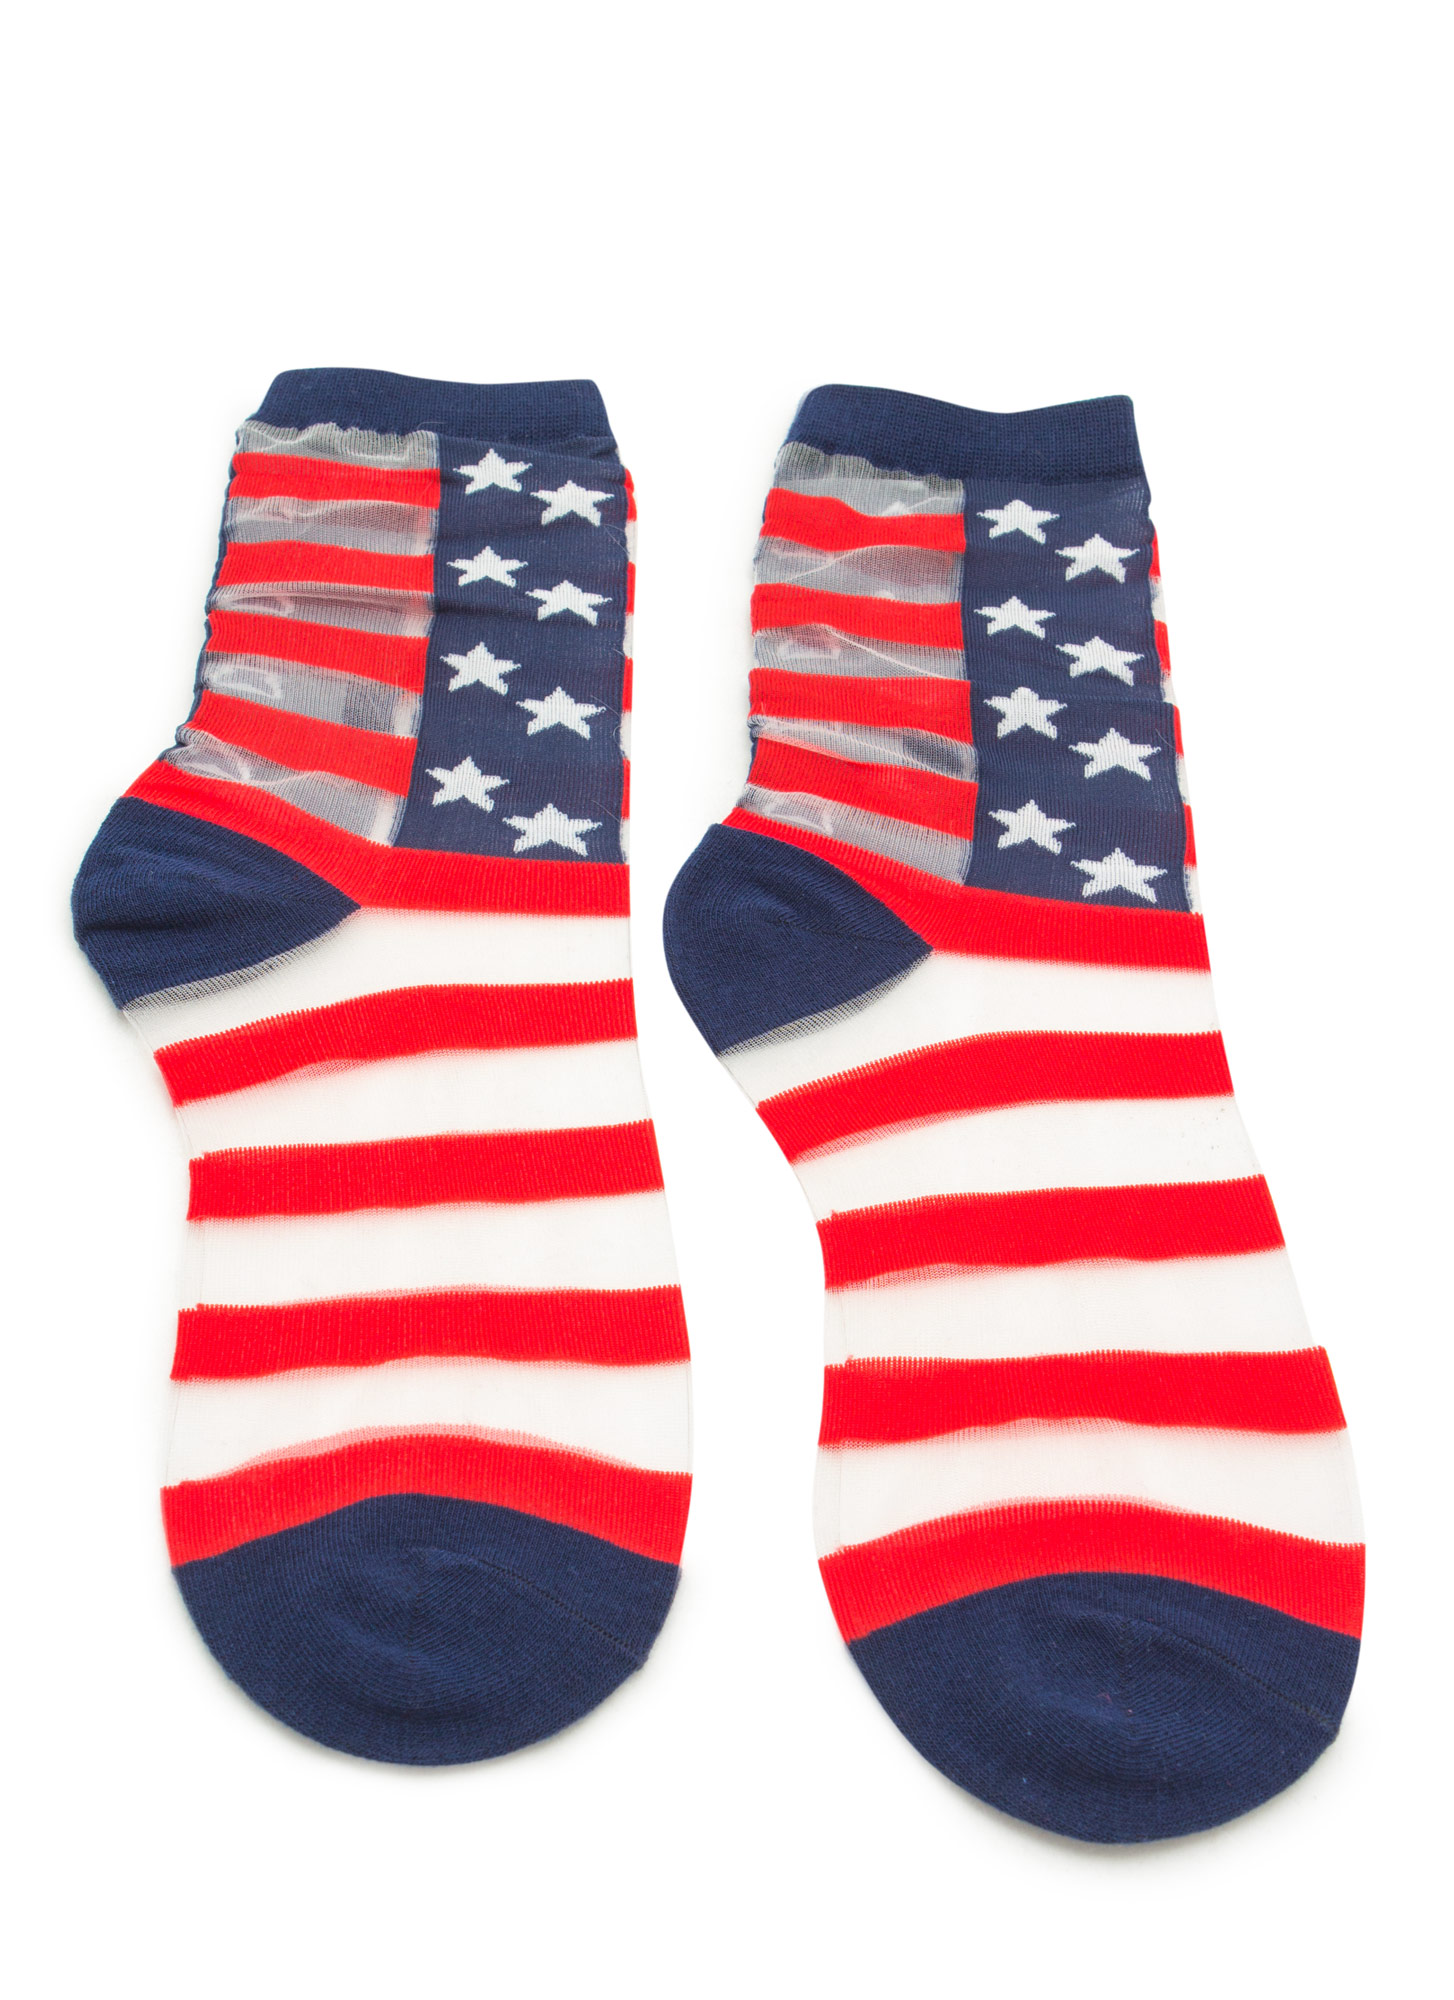 Sheer Striped Mesh American Flag Socks NAVYRED (Final Sale)